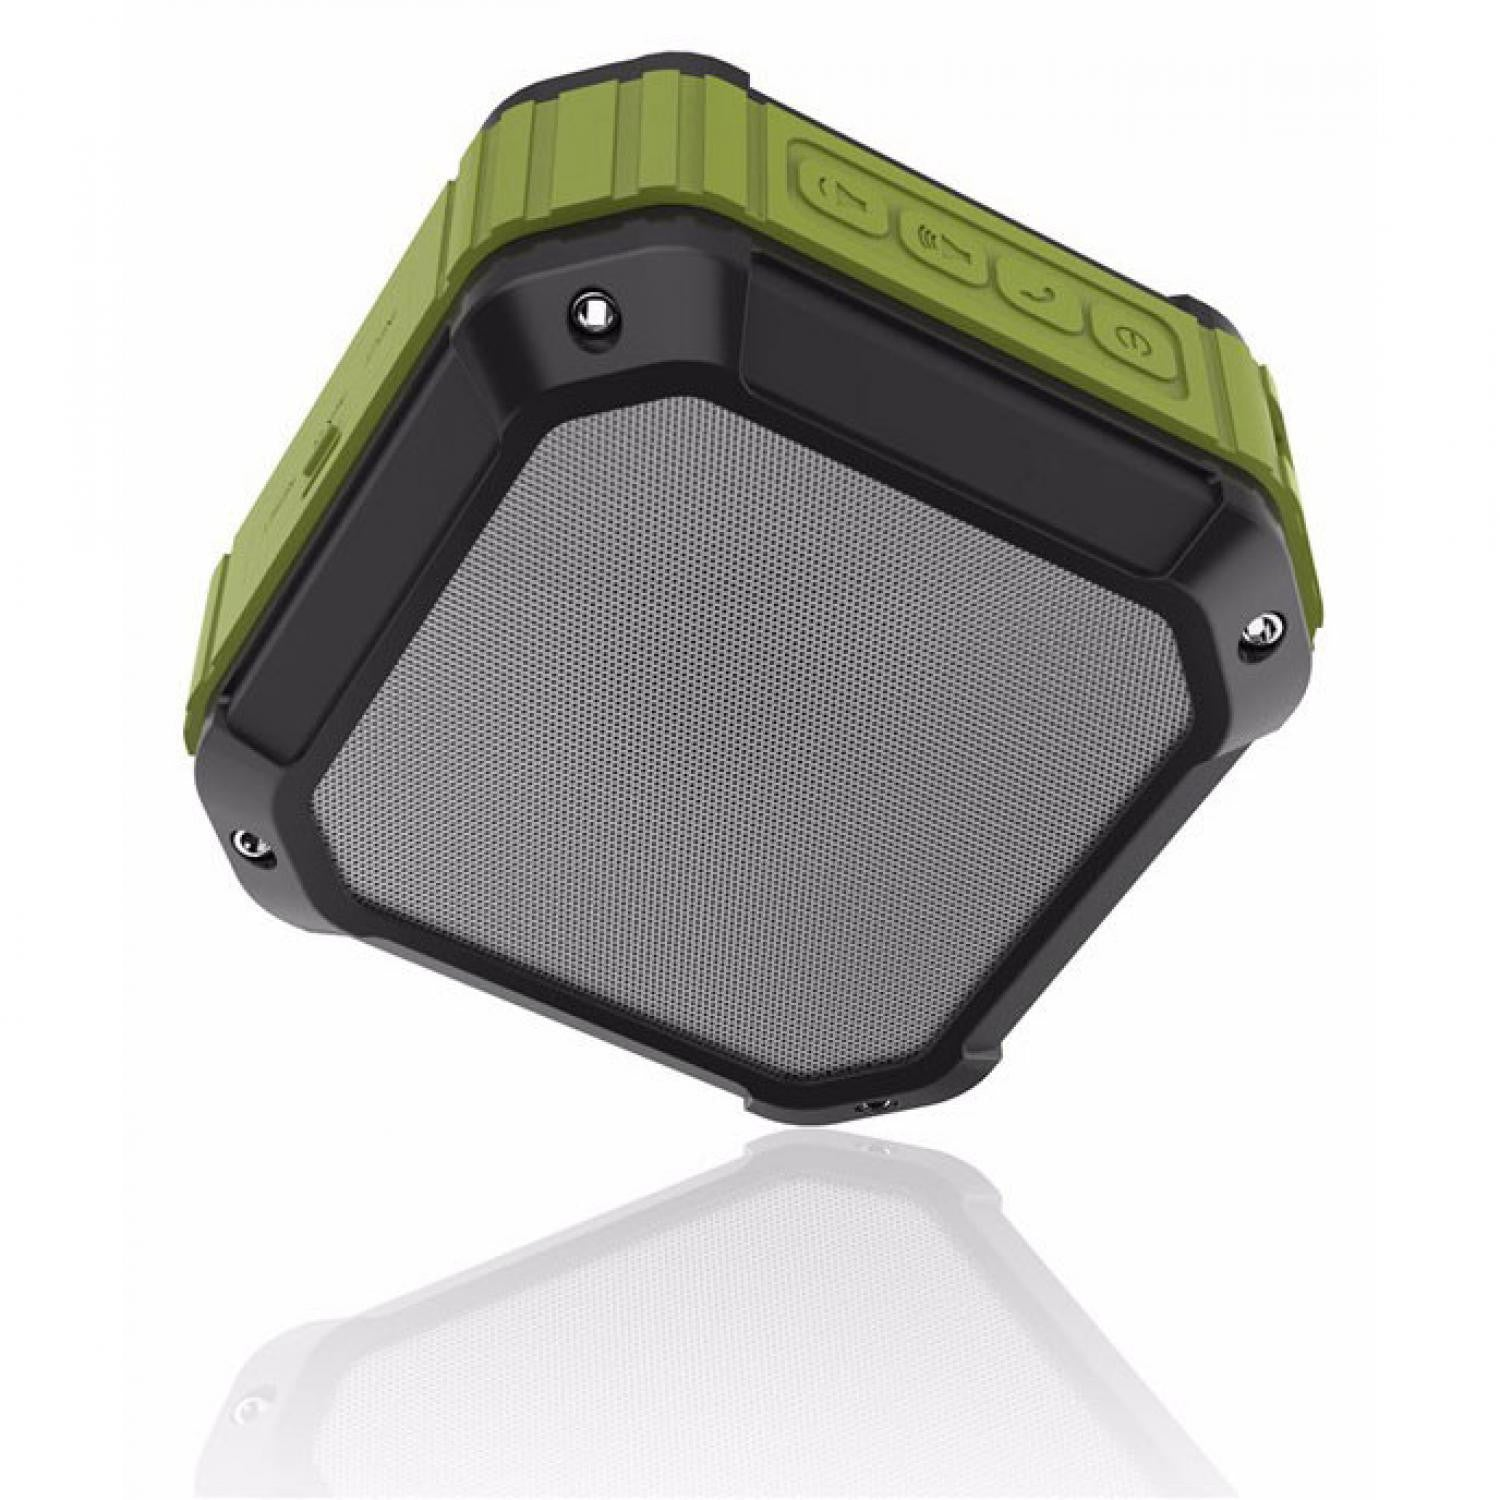 SK-M16 Bluetooth 4.1 Waterproof Speaker